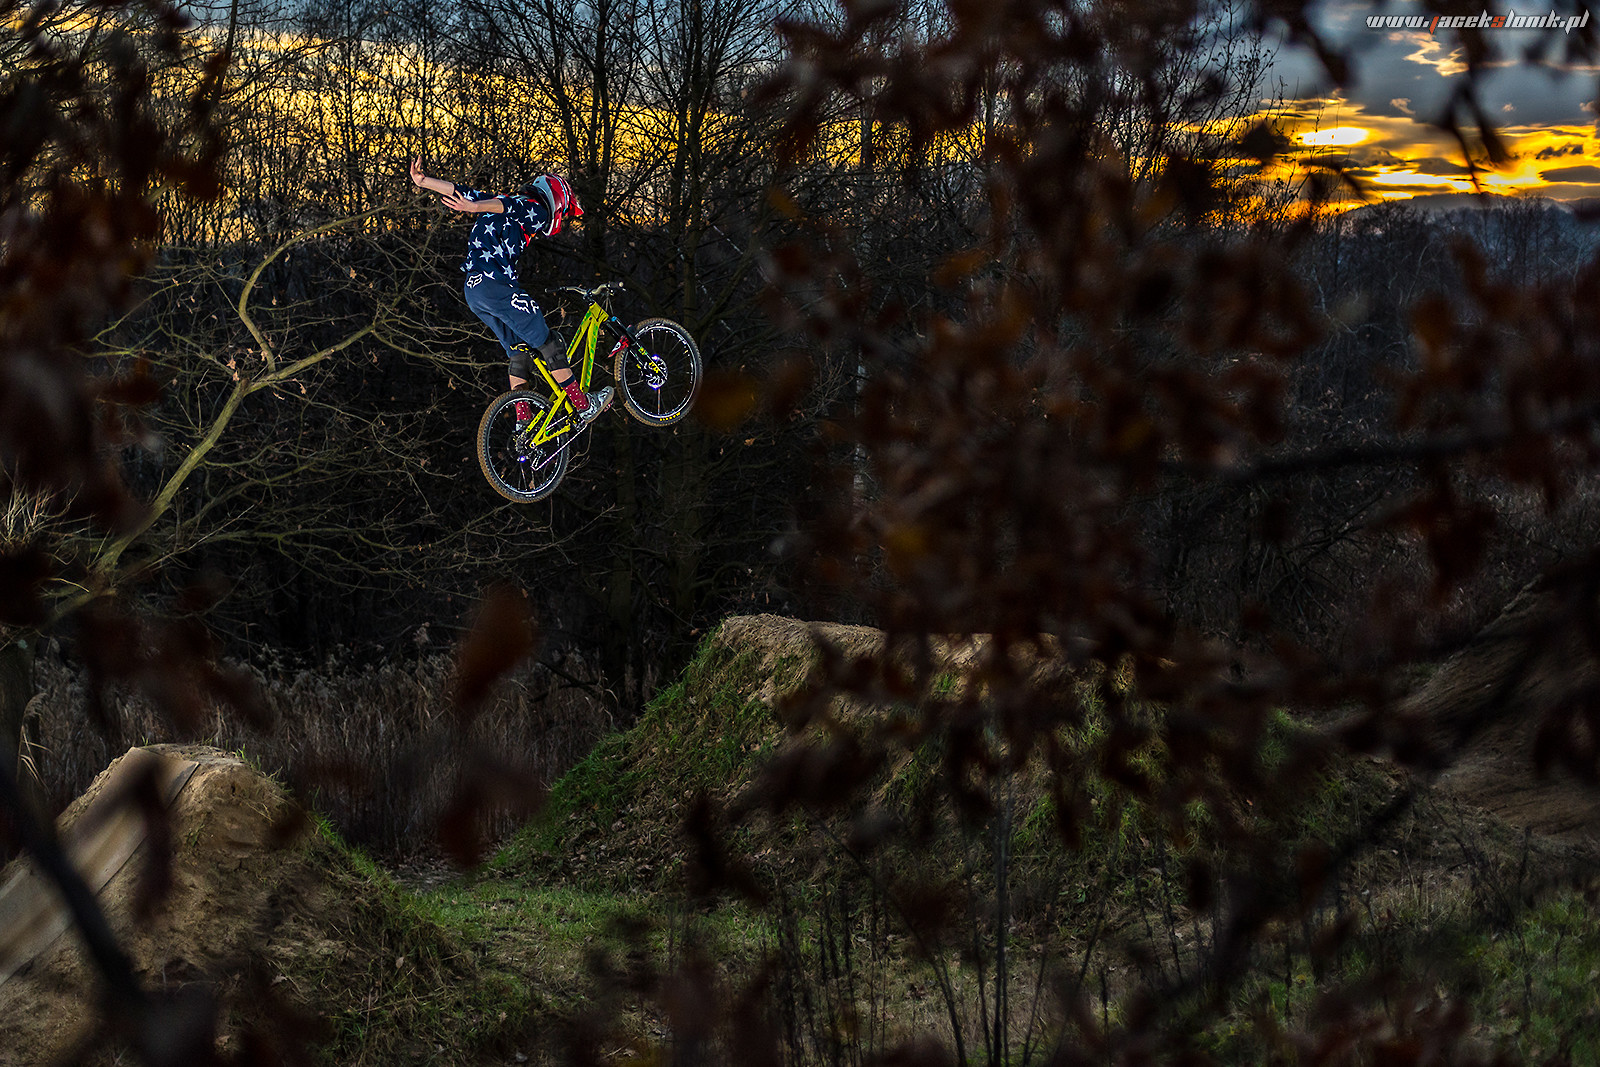 Suicide no hander - for the first time since two years! - JacekSlonik - Mountain Biking Pictures - Vital MTB